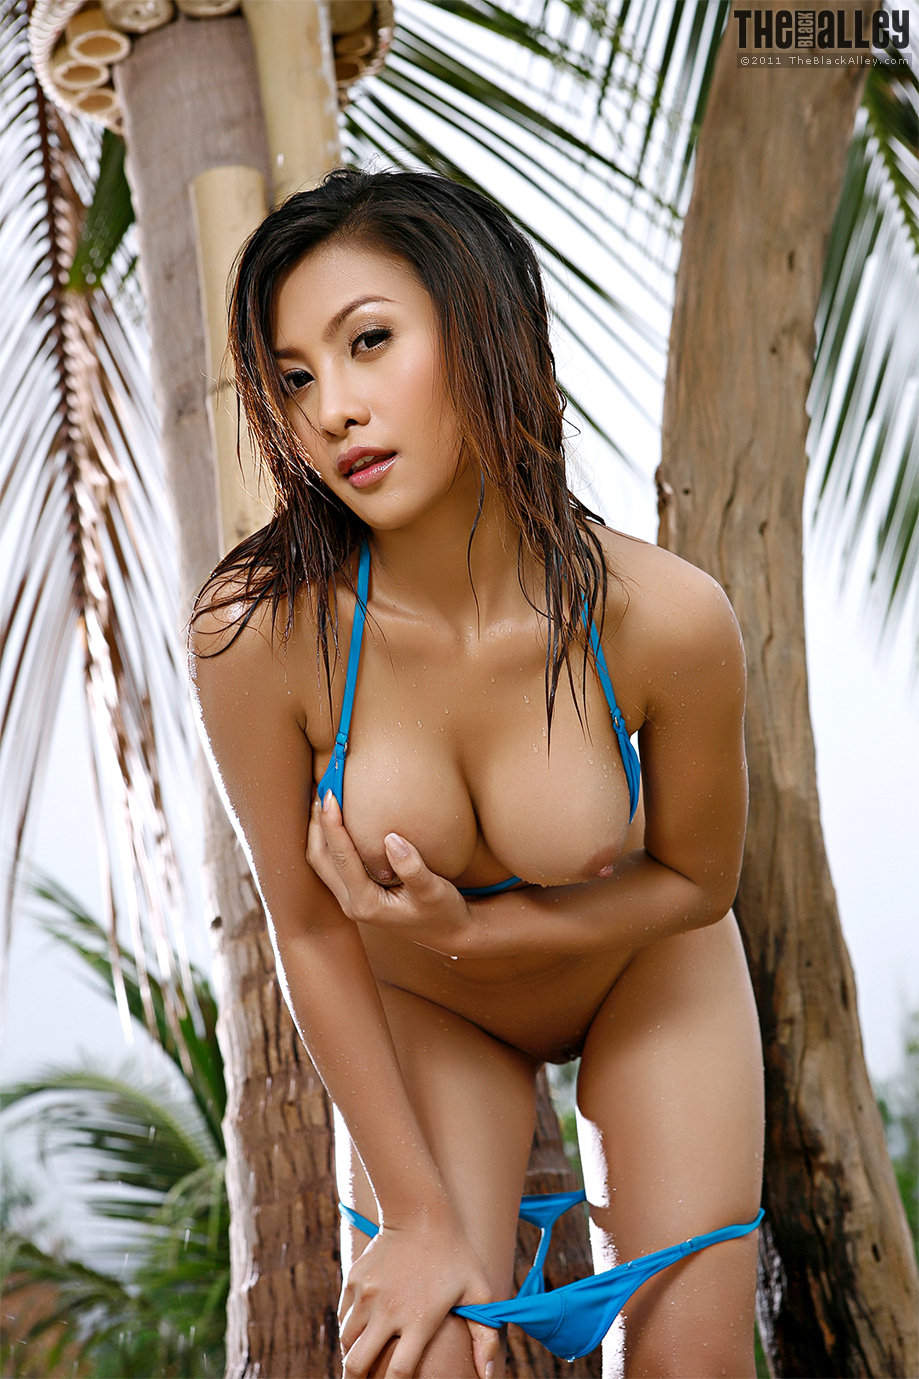 asian nude abercrombie girl photos